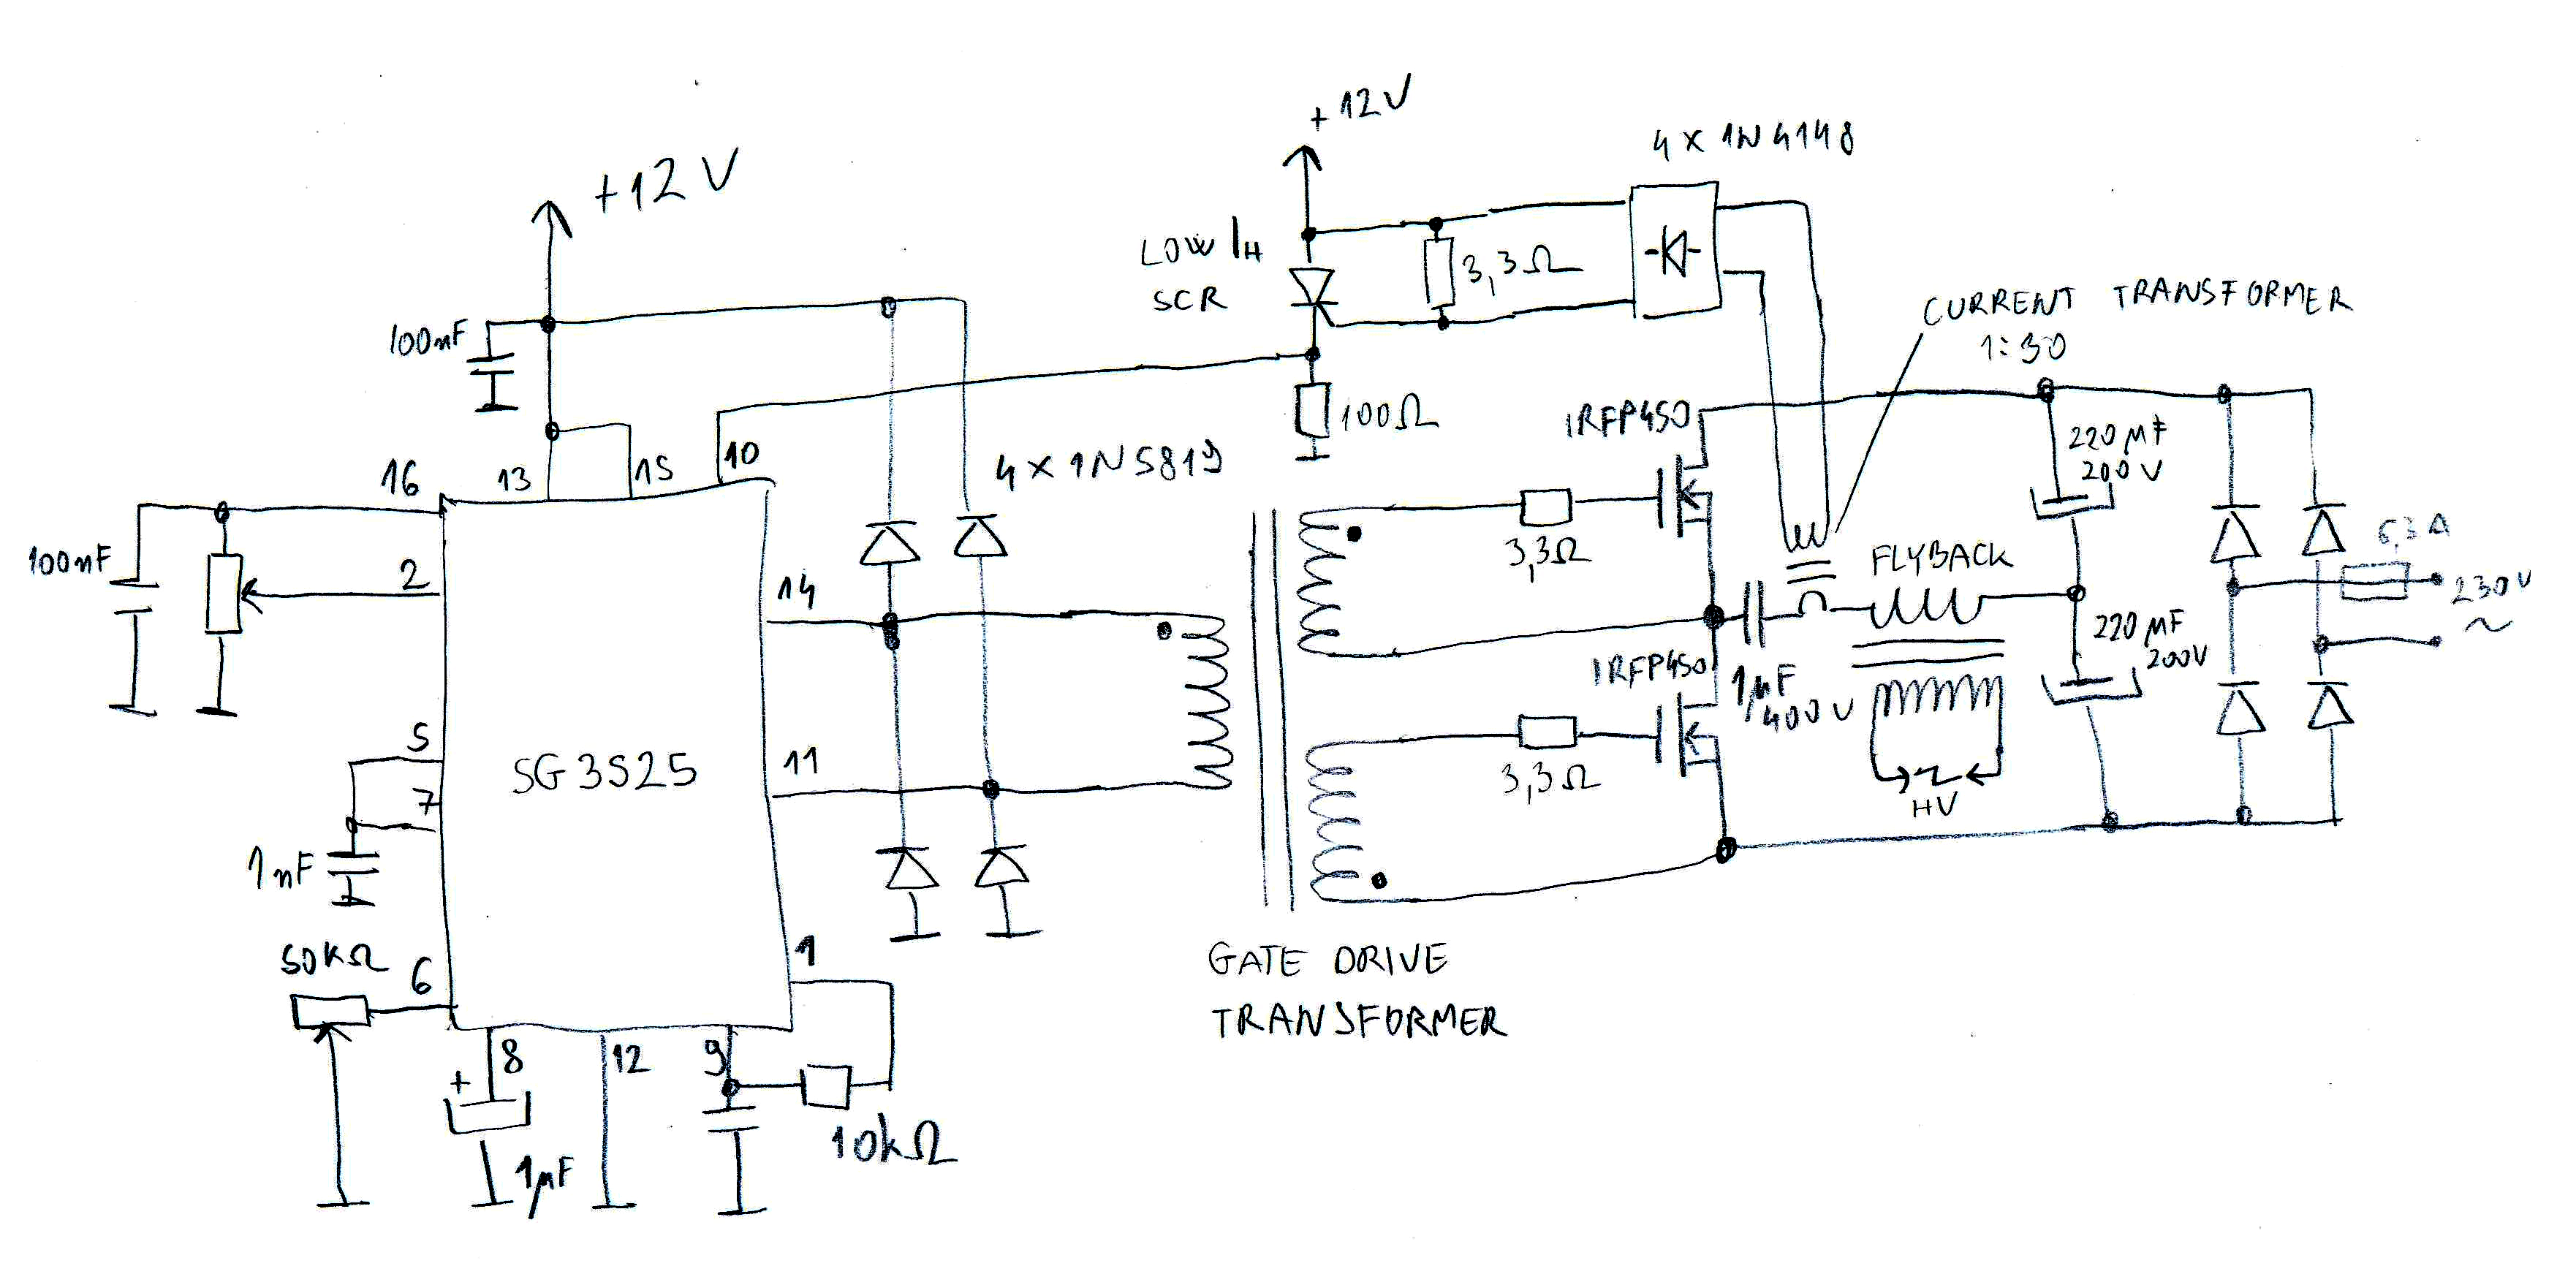 flyback tester schematic diagram